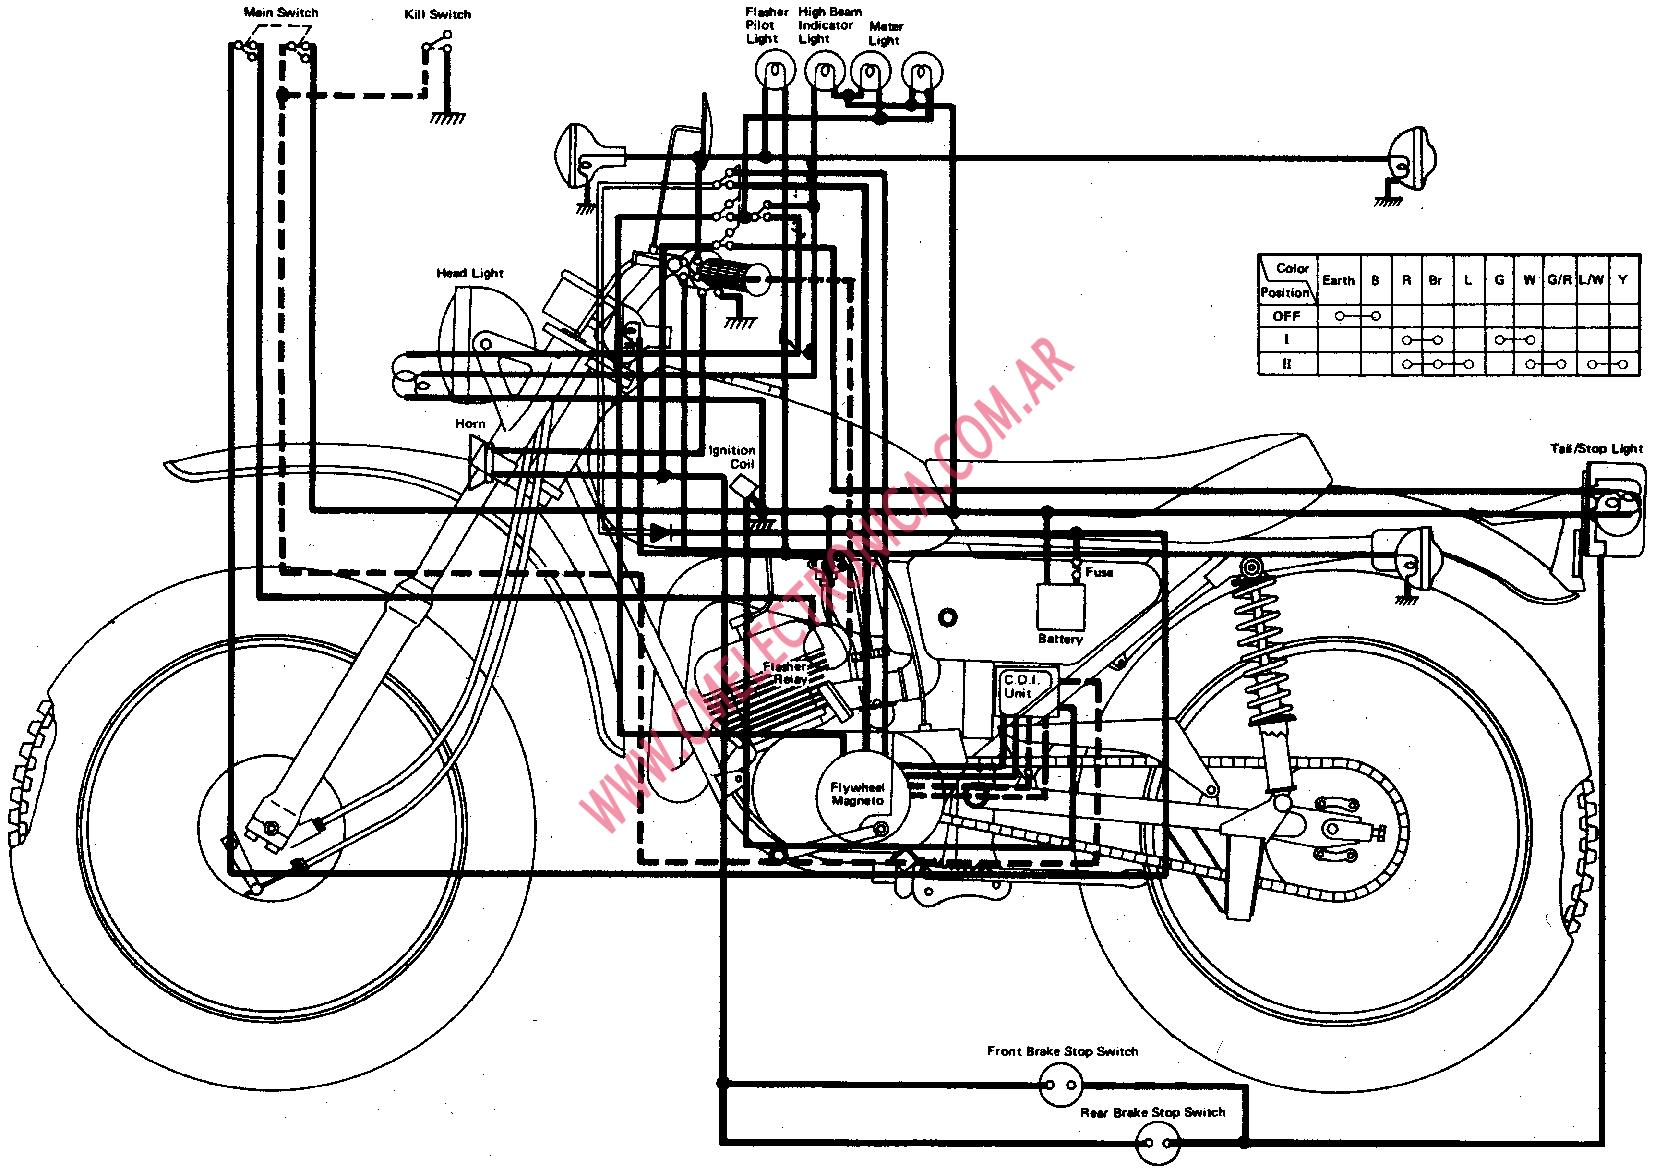 suzuki sp 400 wiring  suzuki  free engine image for user manual download